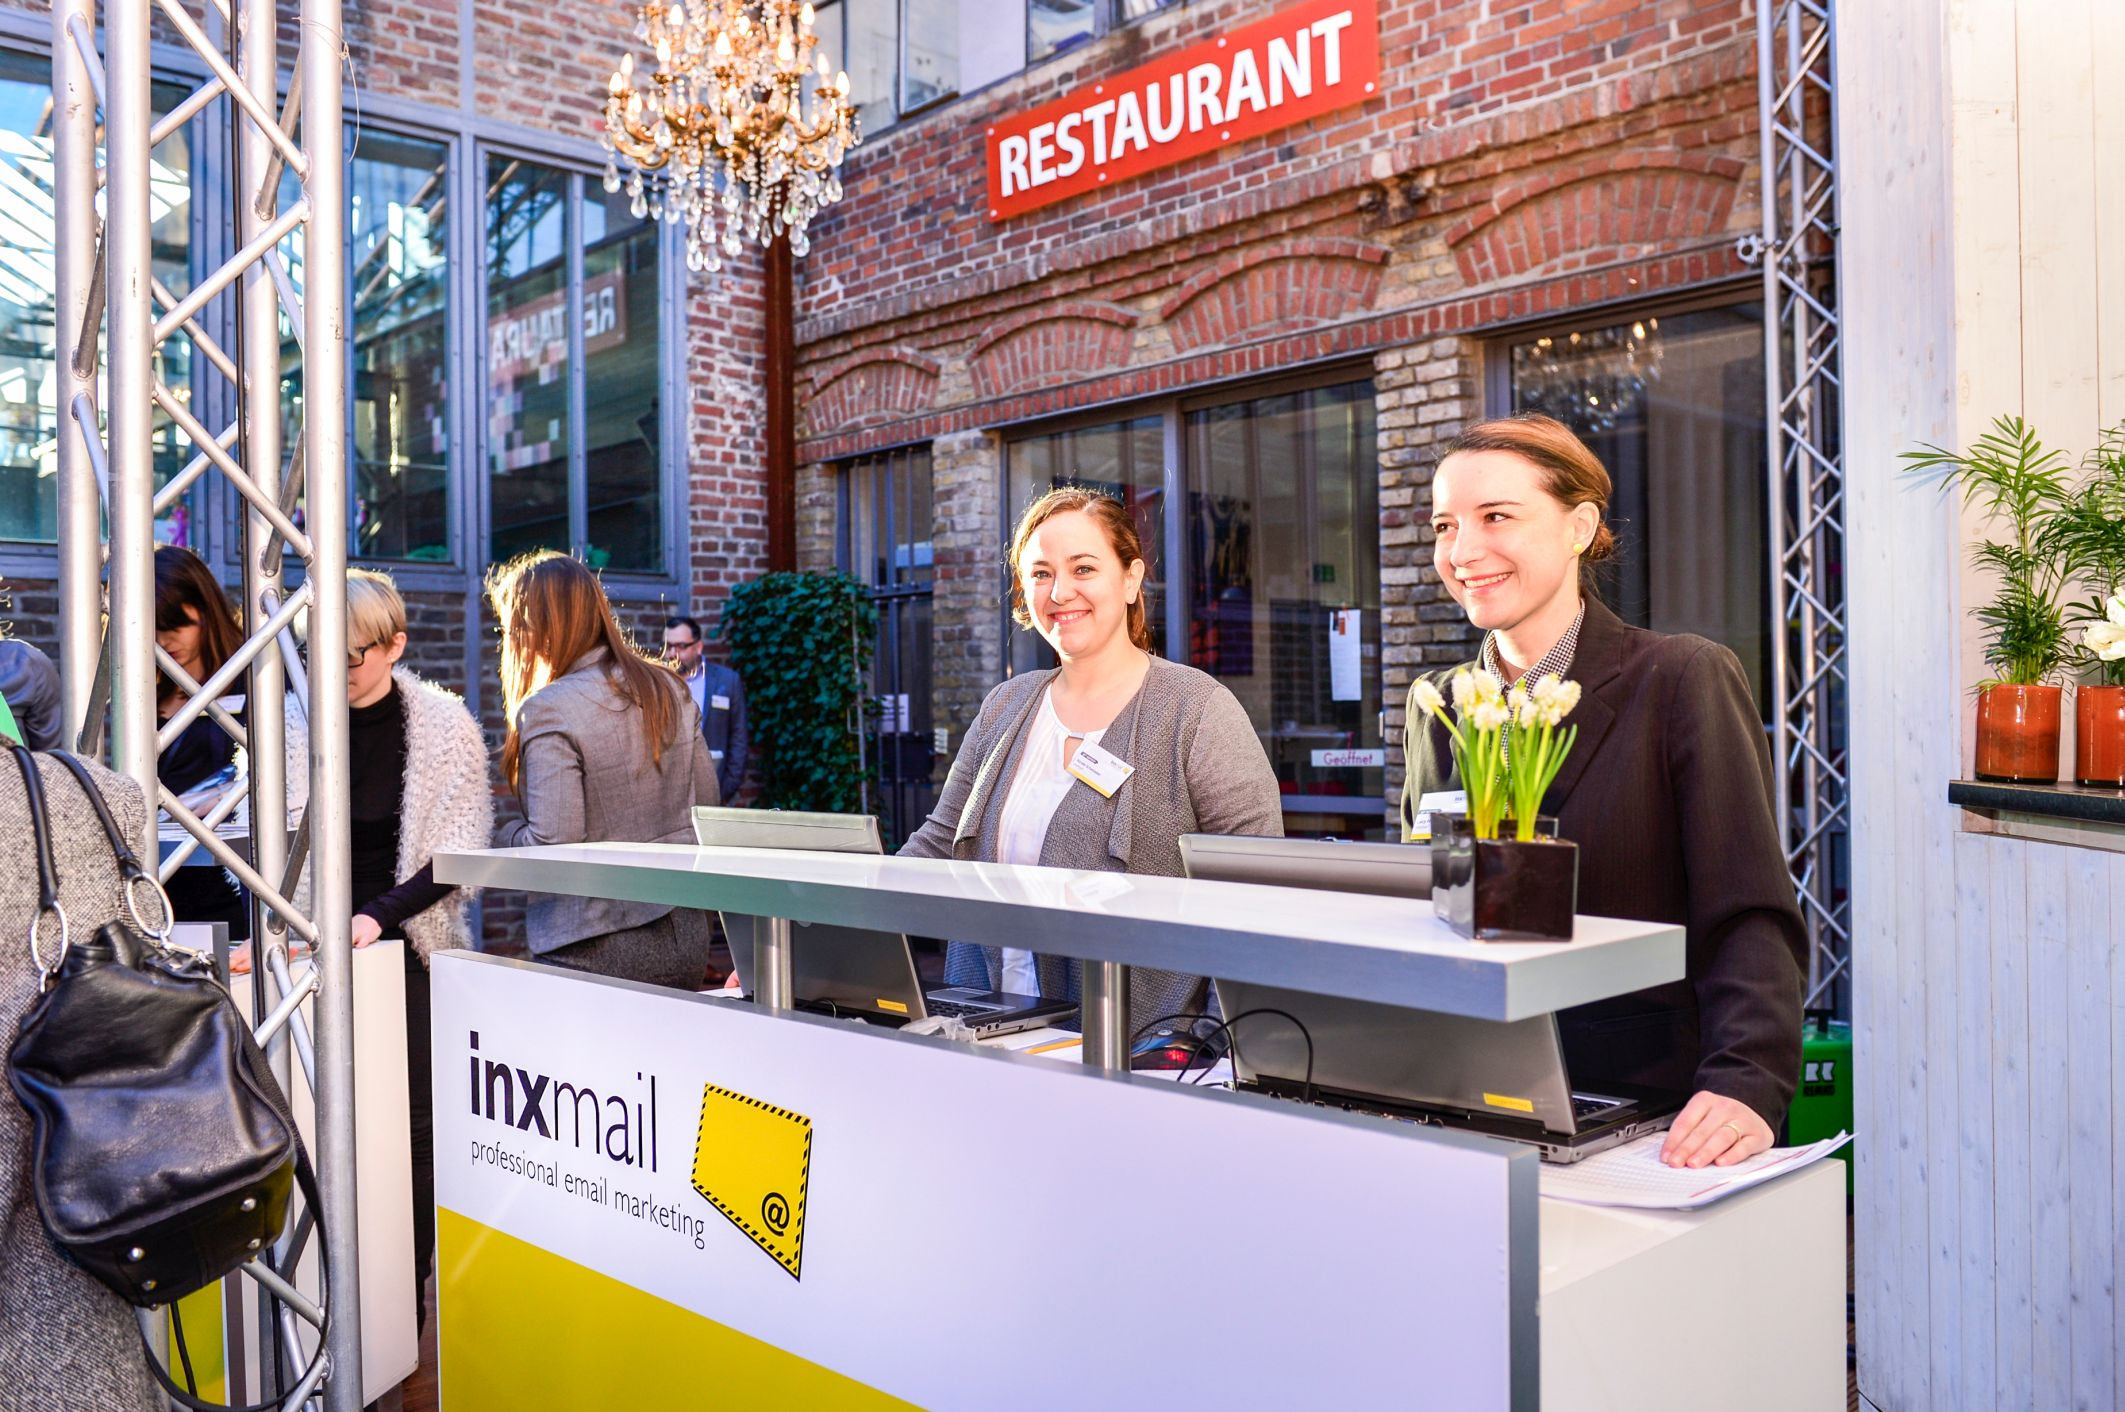 Inxmail-Inspire-Conference-2015-Anmeldung.jpg